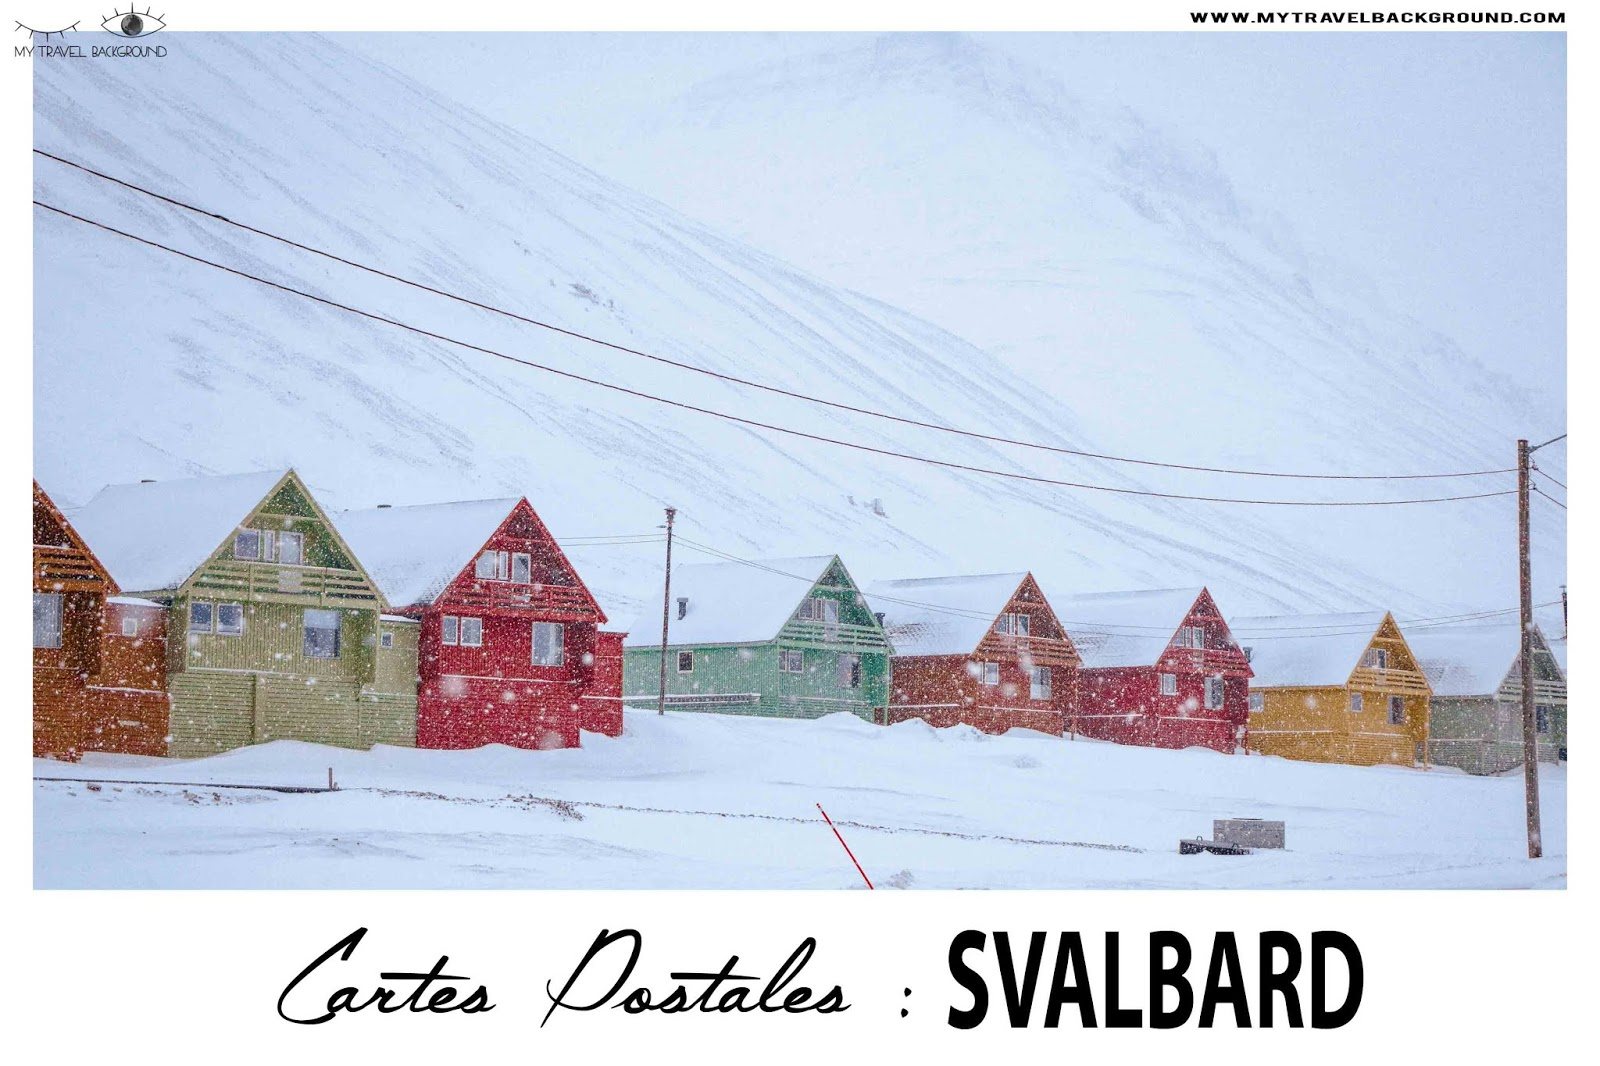 My Travel Background : cartes postales du Svalbard